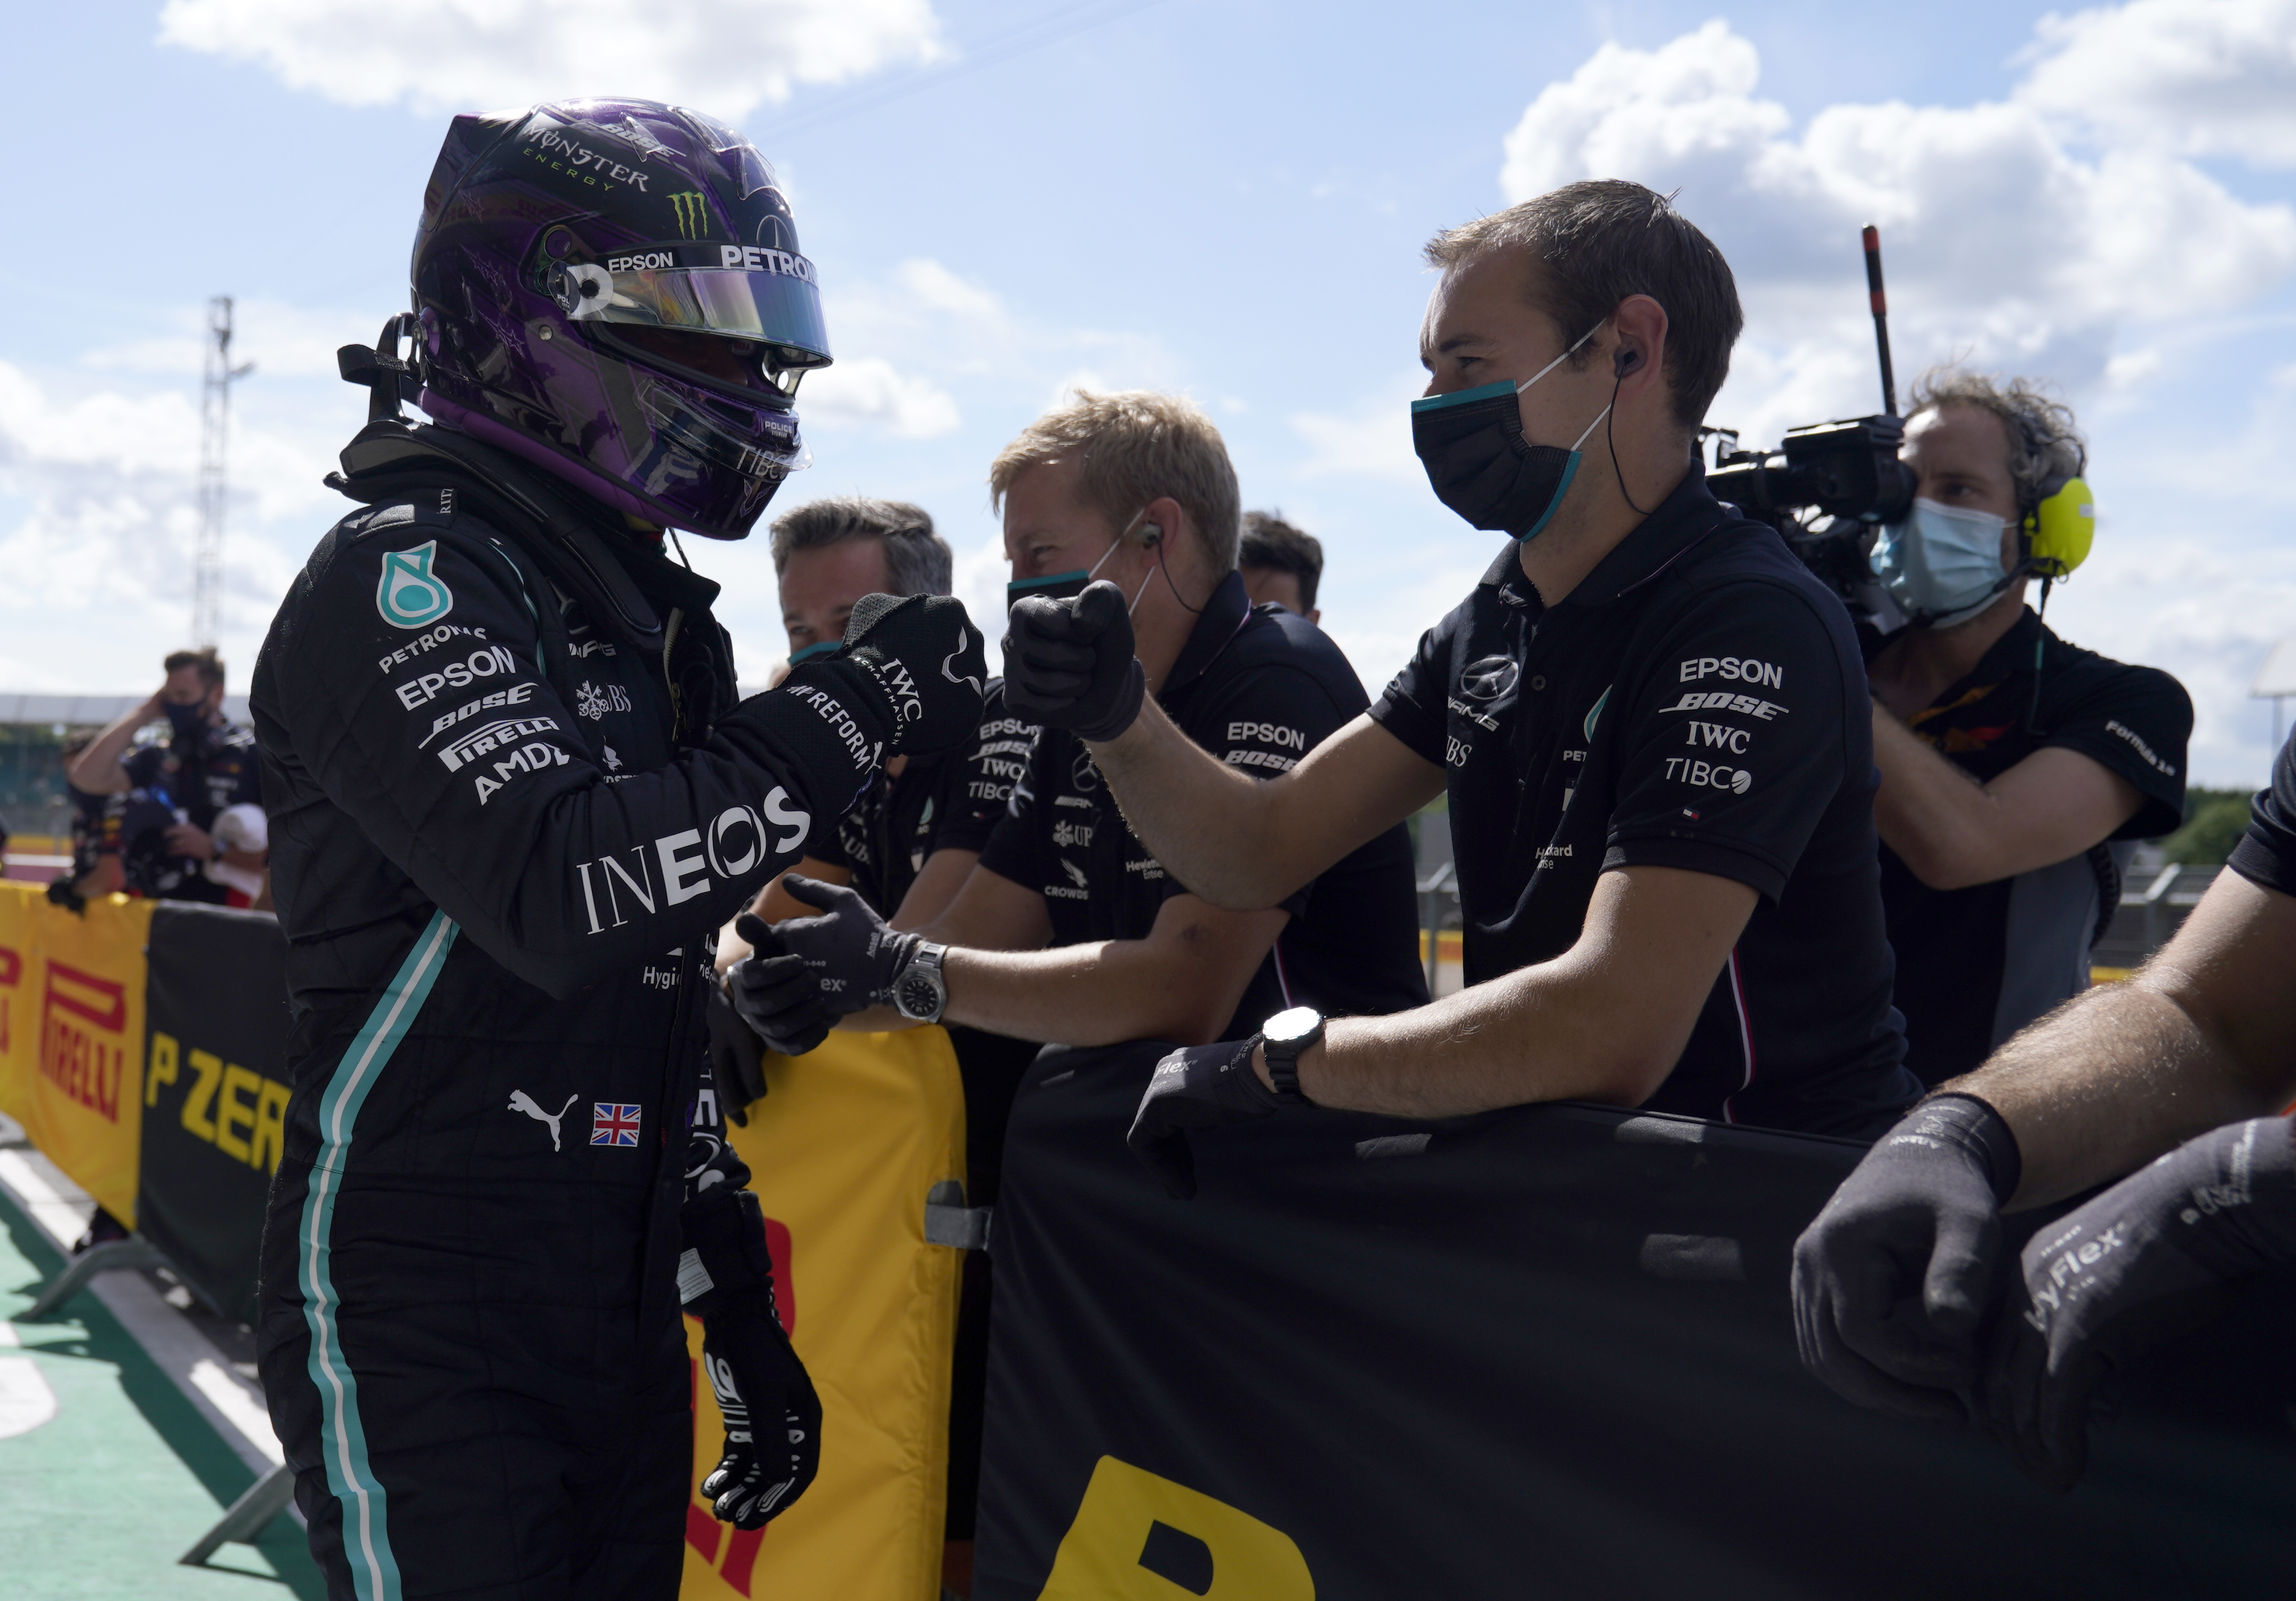 Mercedes driver Lewis Hamilton of Britain, left, celebrates with team members after he clocked the fastest time during the qualifying session for the British Formula One Grand Prix at the Silverstone racetrack, Silverstone, England, Saturday, Aug. 1, 2020. The British Formula One Grand Prix will be held on Sunday. (Will Oliver/Poolvia AP)